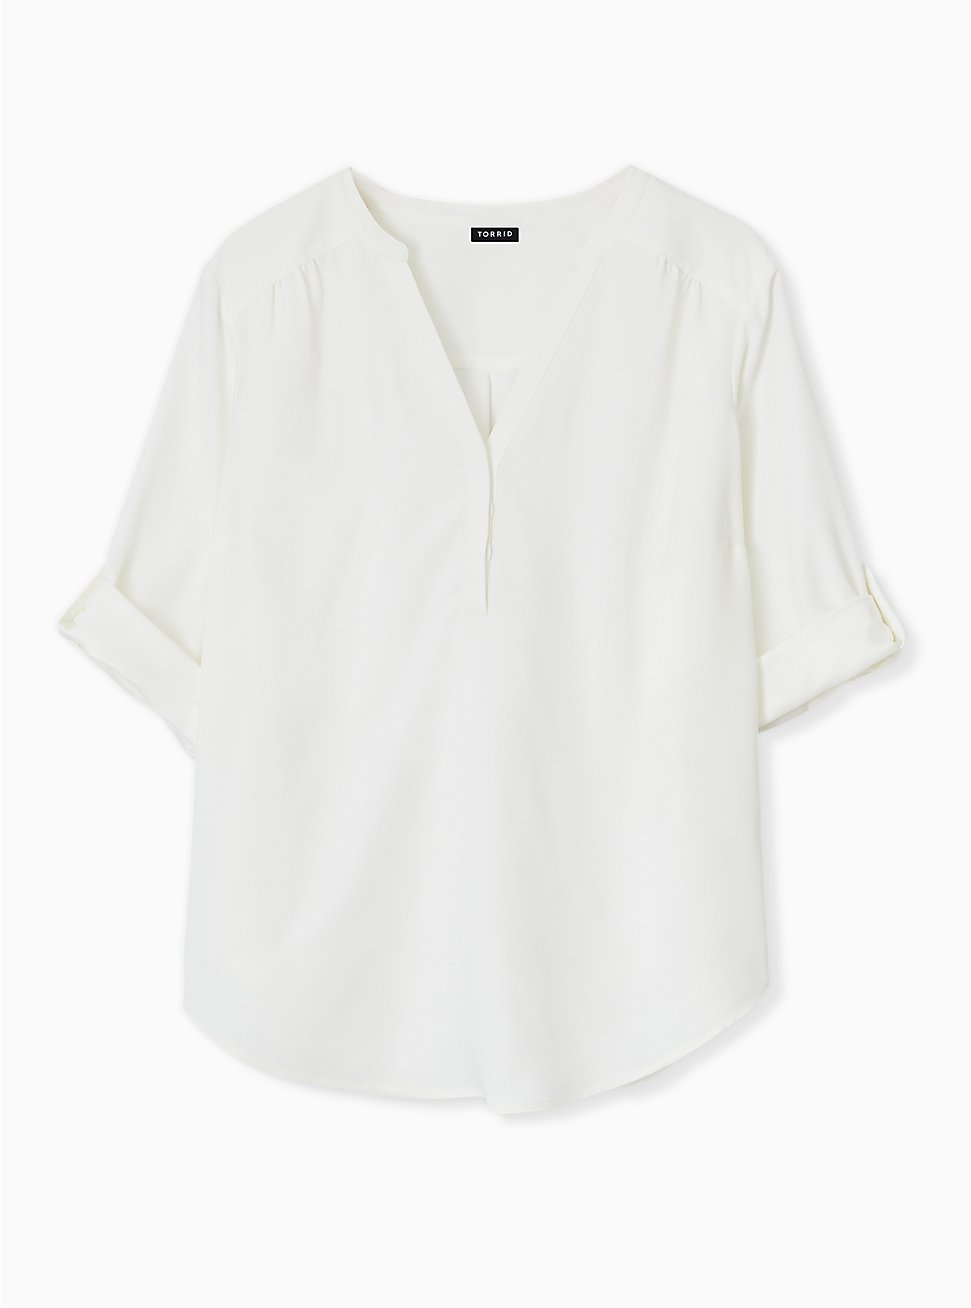 Harper - Ivory Crepe Back Satin Pullover Blouse , CLOUD DANCER, hi-res